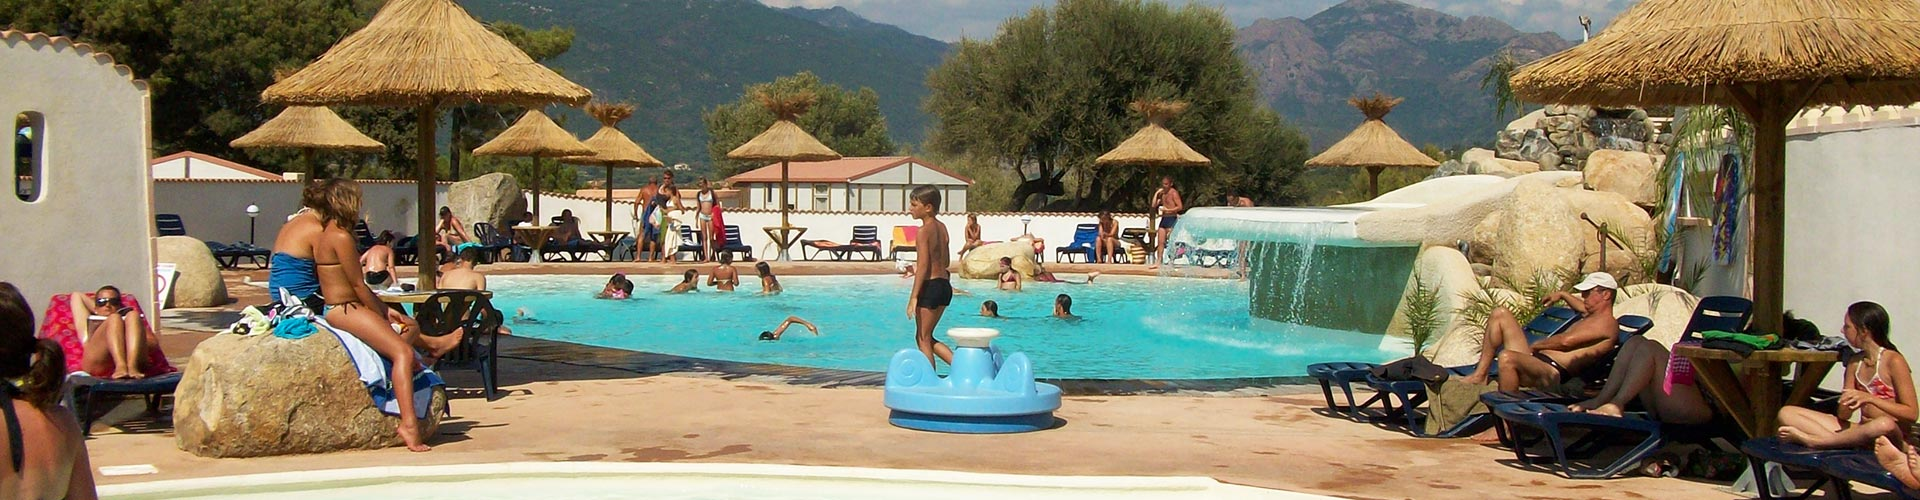 Camping corse groupe